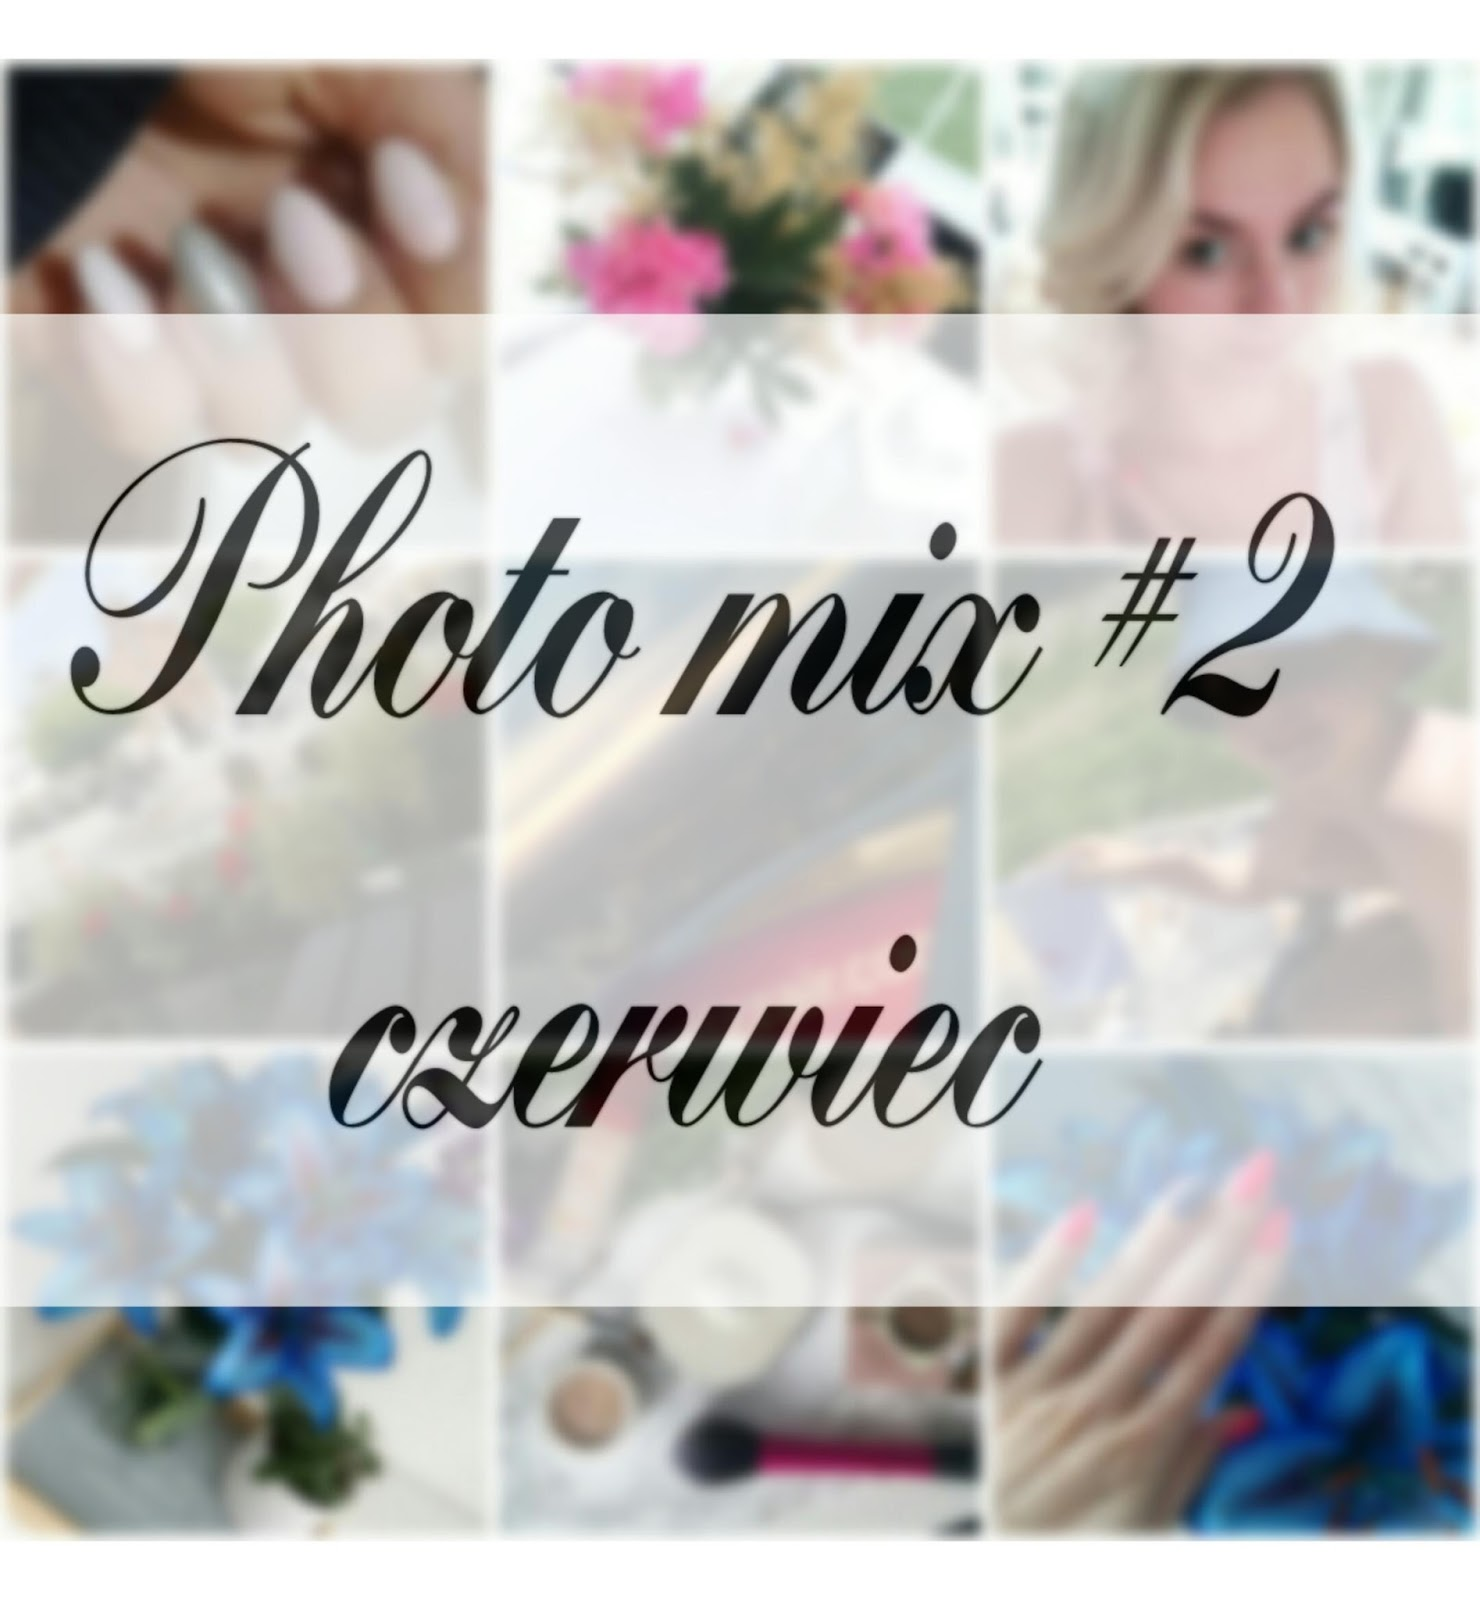 Photo mix Czerwiec #2